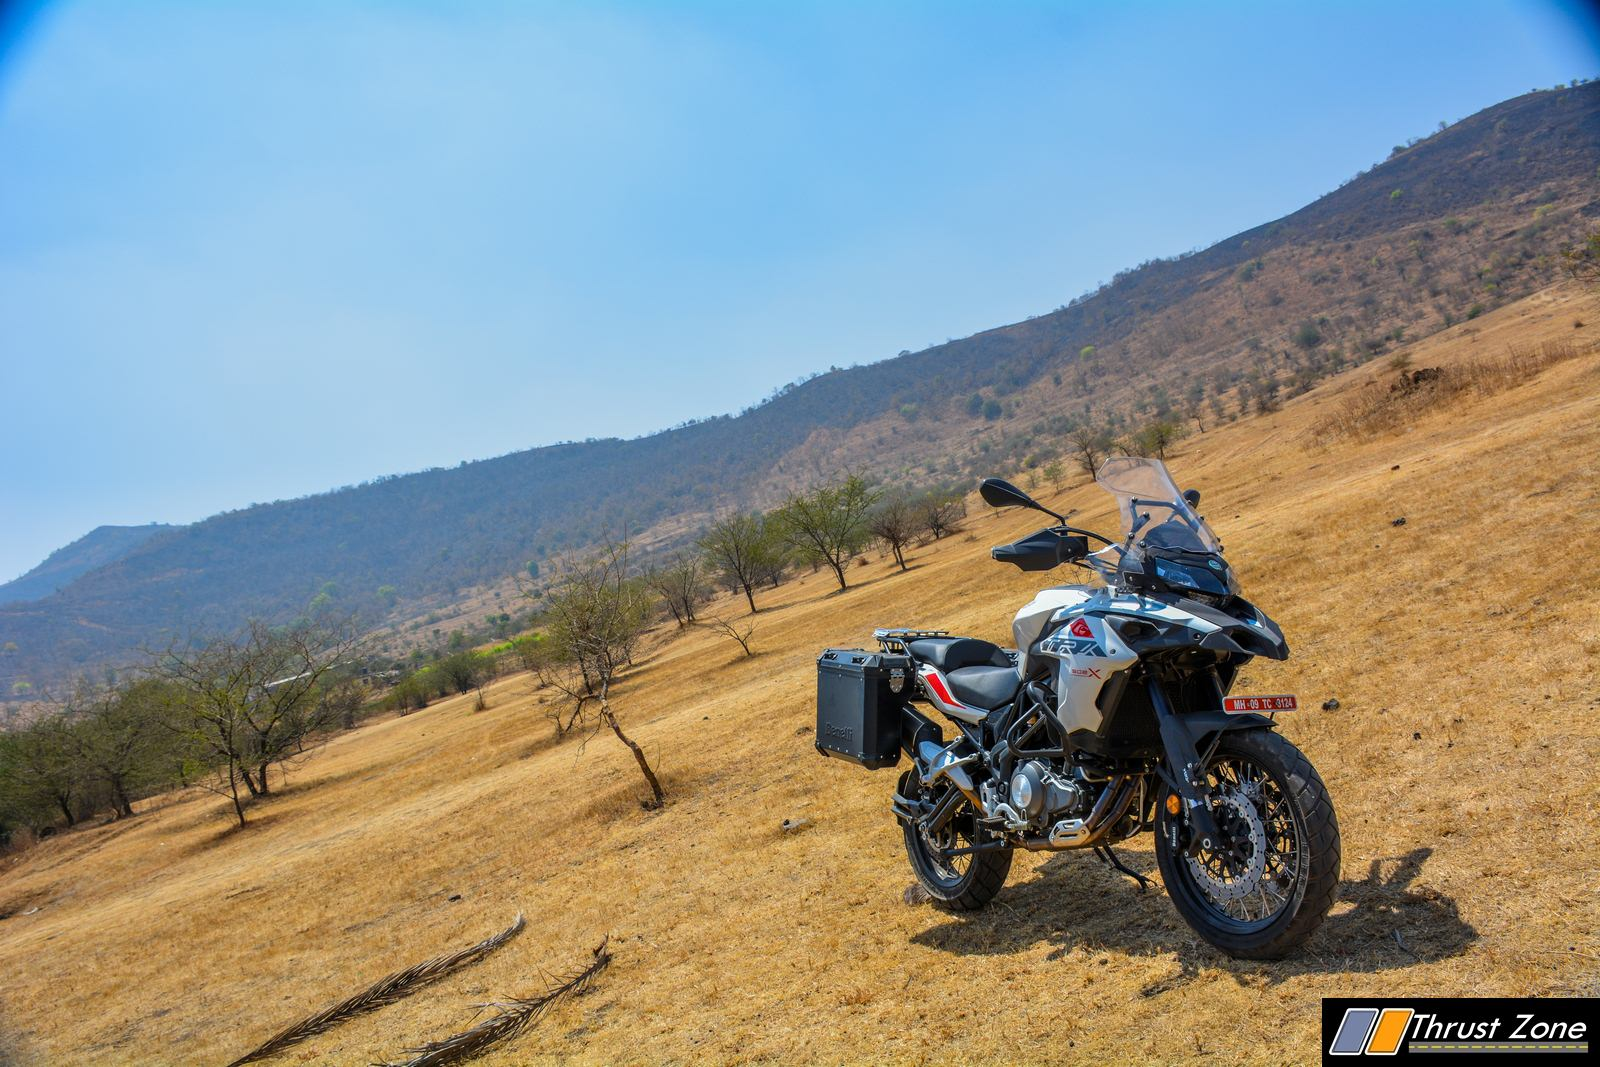 https://www.thrustzone.com/wp-content/uploads/2019/03/Benelli-TRK-502X-India-Review-13.jpg